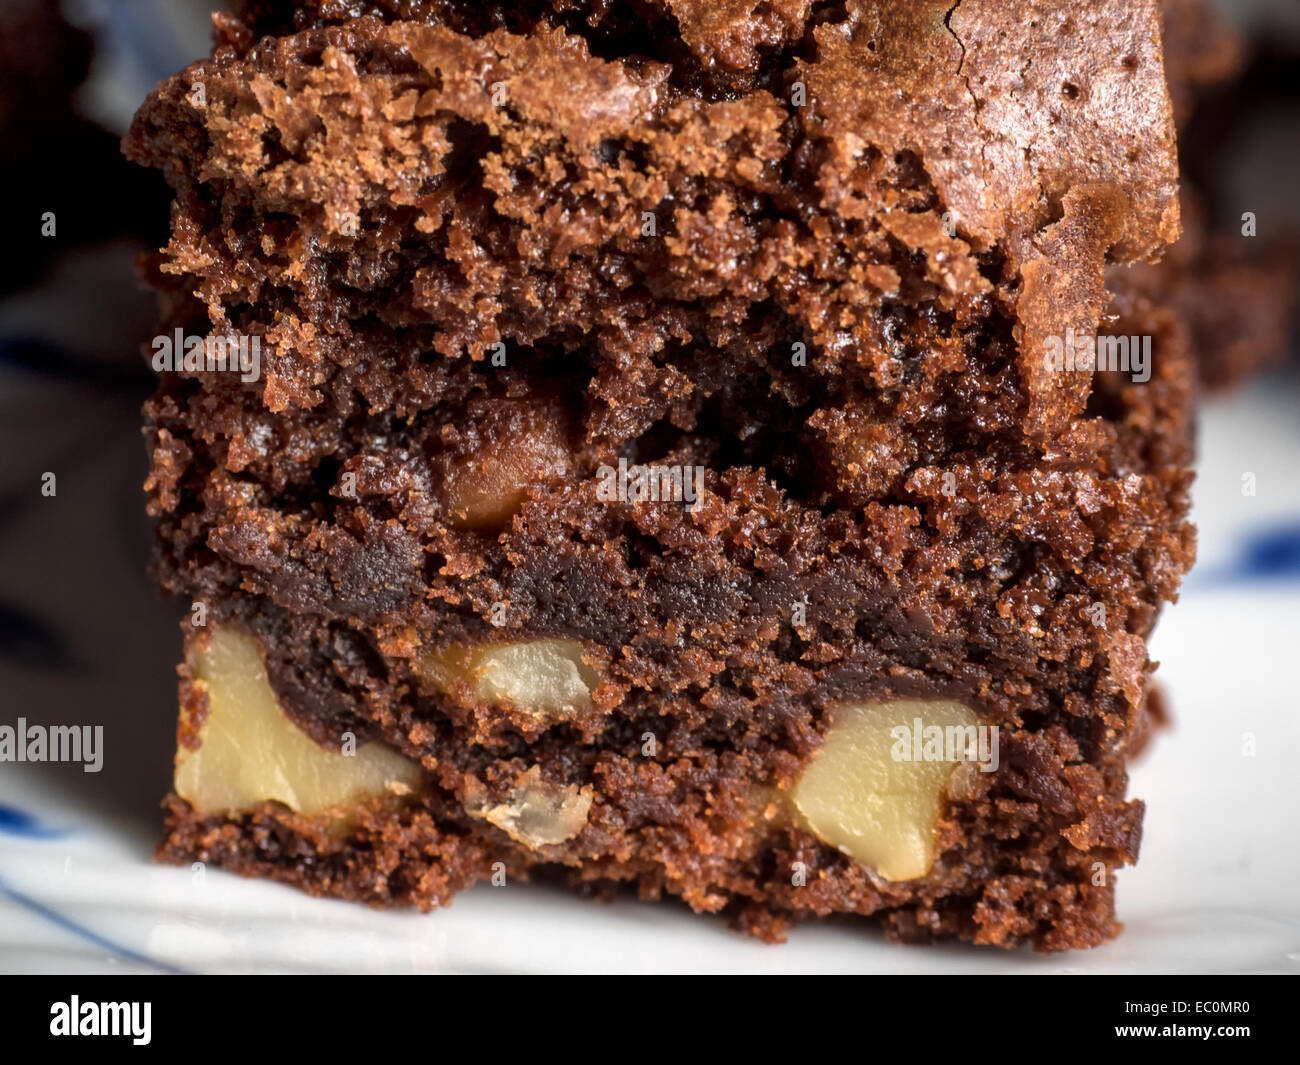 Delicious brownie made of chokolate and nuts - Stock Image